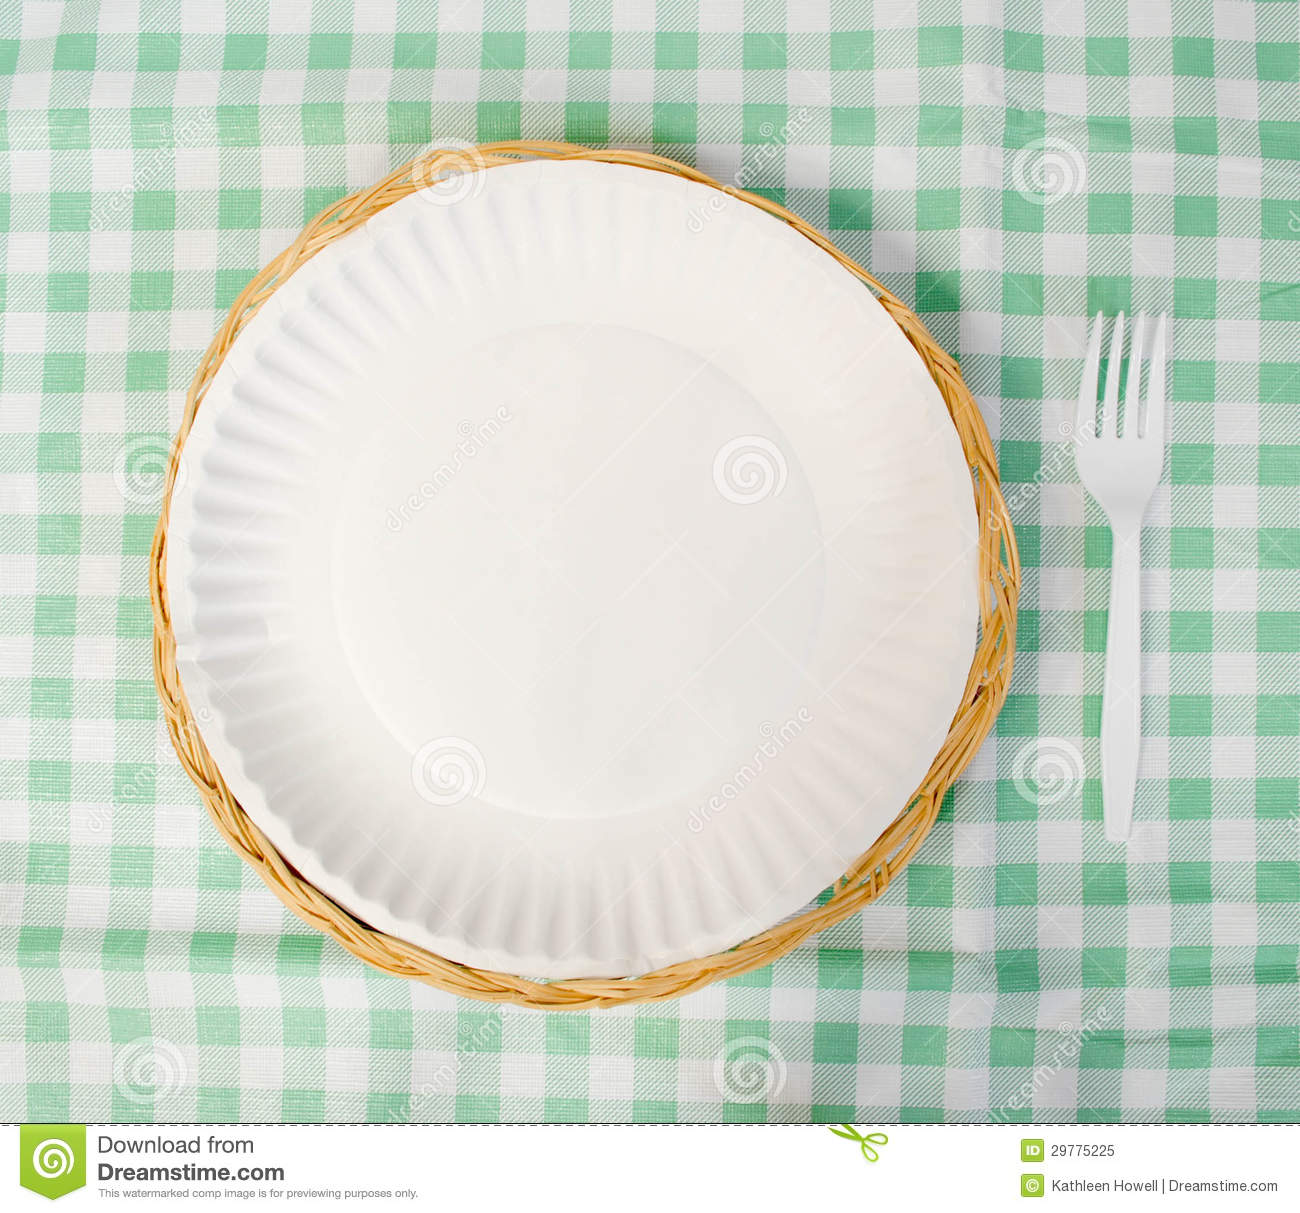 Picnic place setting, paper plate with plastic fork on a tablecloth.